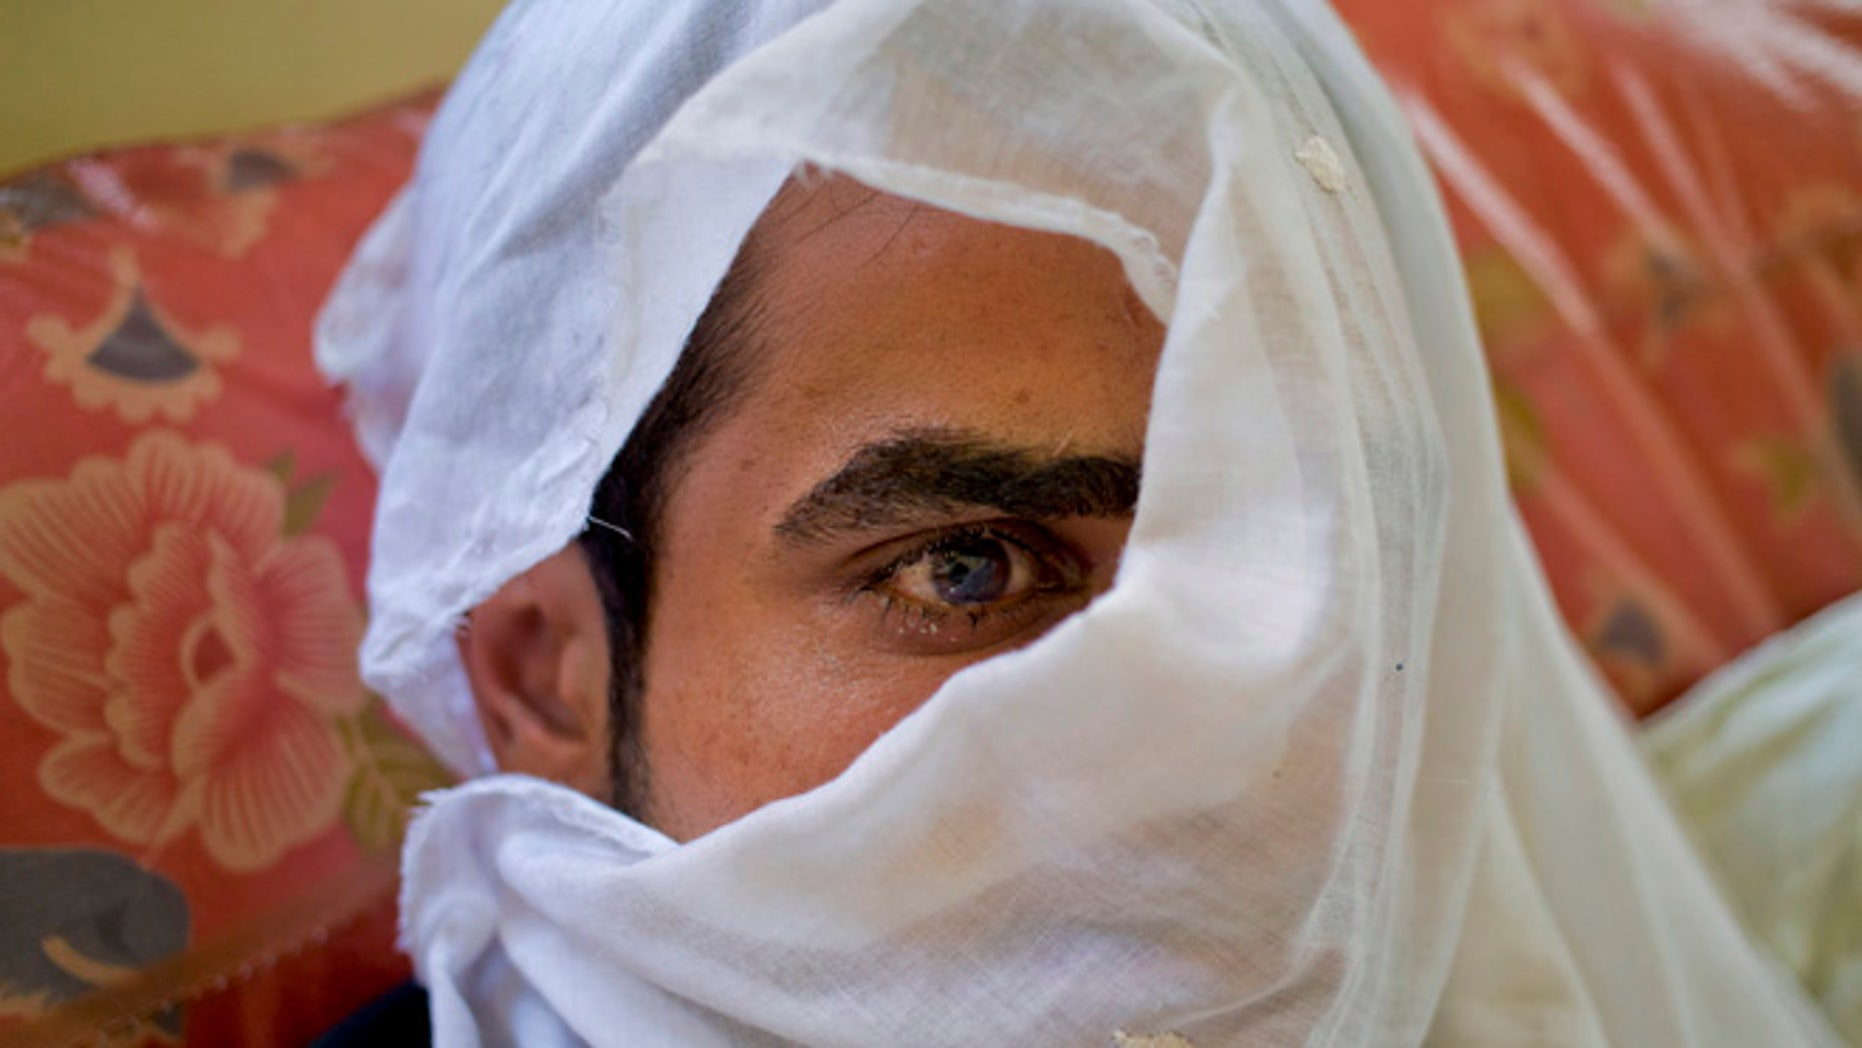 JULY 13: Huzaif Nazir, whose eye was damaged after Indian government forces fired pellets at him during a protest covers his face with a white cloth to hide his identity as he rests on a hospital bed in Srinagar, Indian controlled Kashmir.